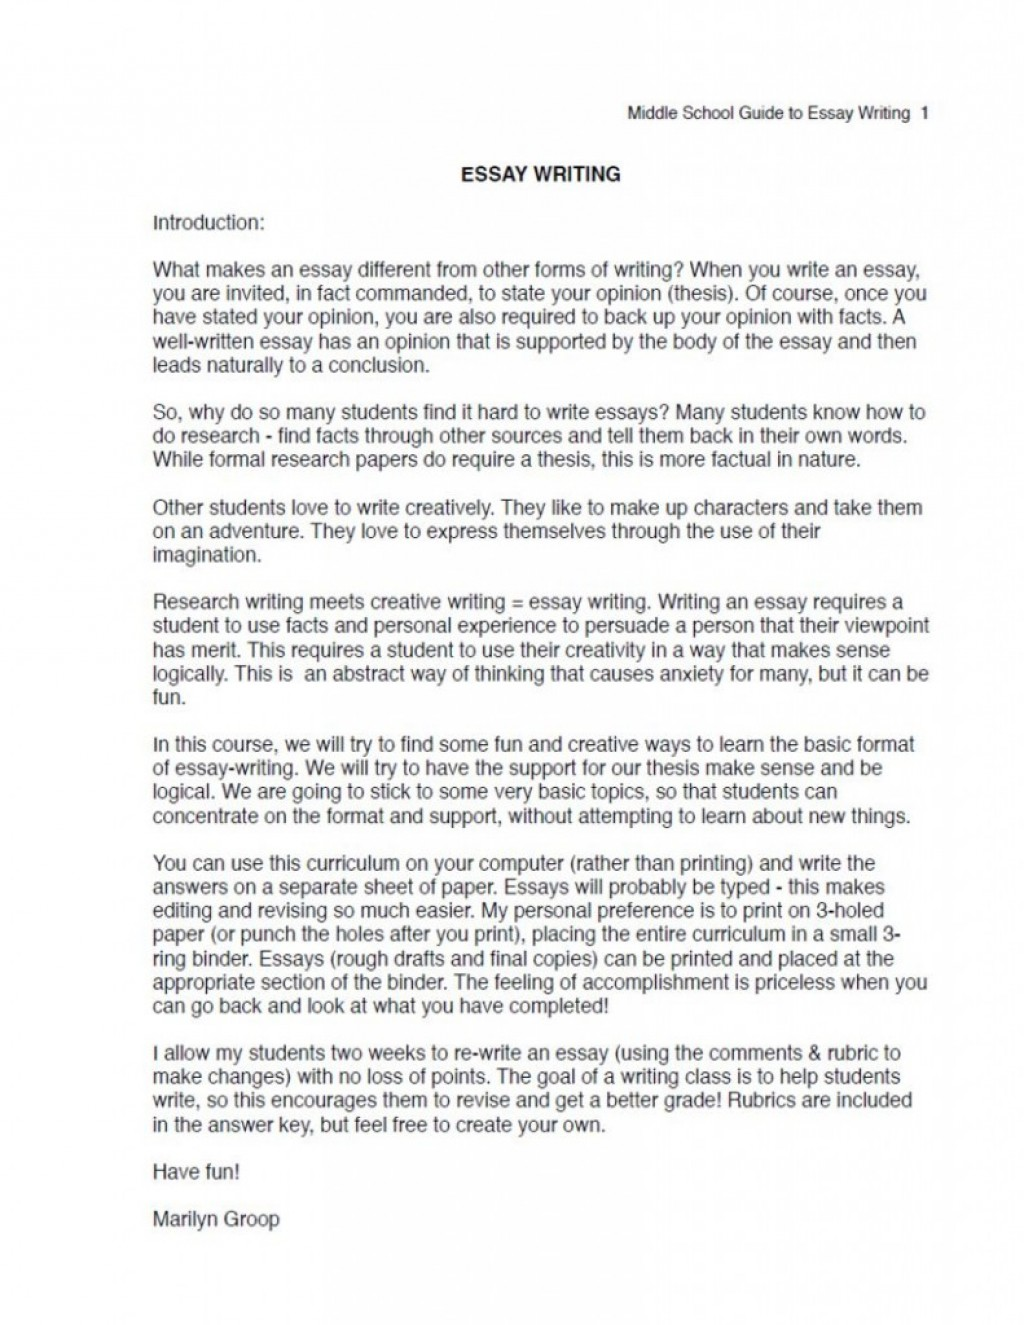 002 Essay On School Example Ms Excerpt Excellent Florida Shooting Uniform Is Necessary Large